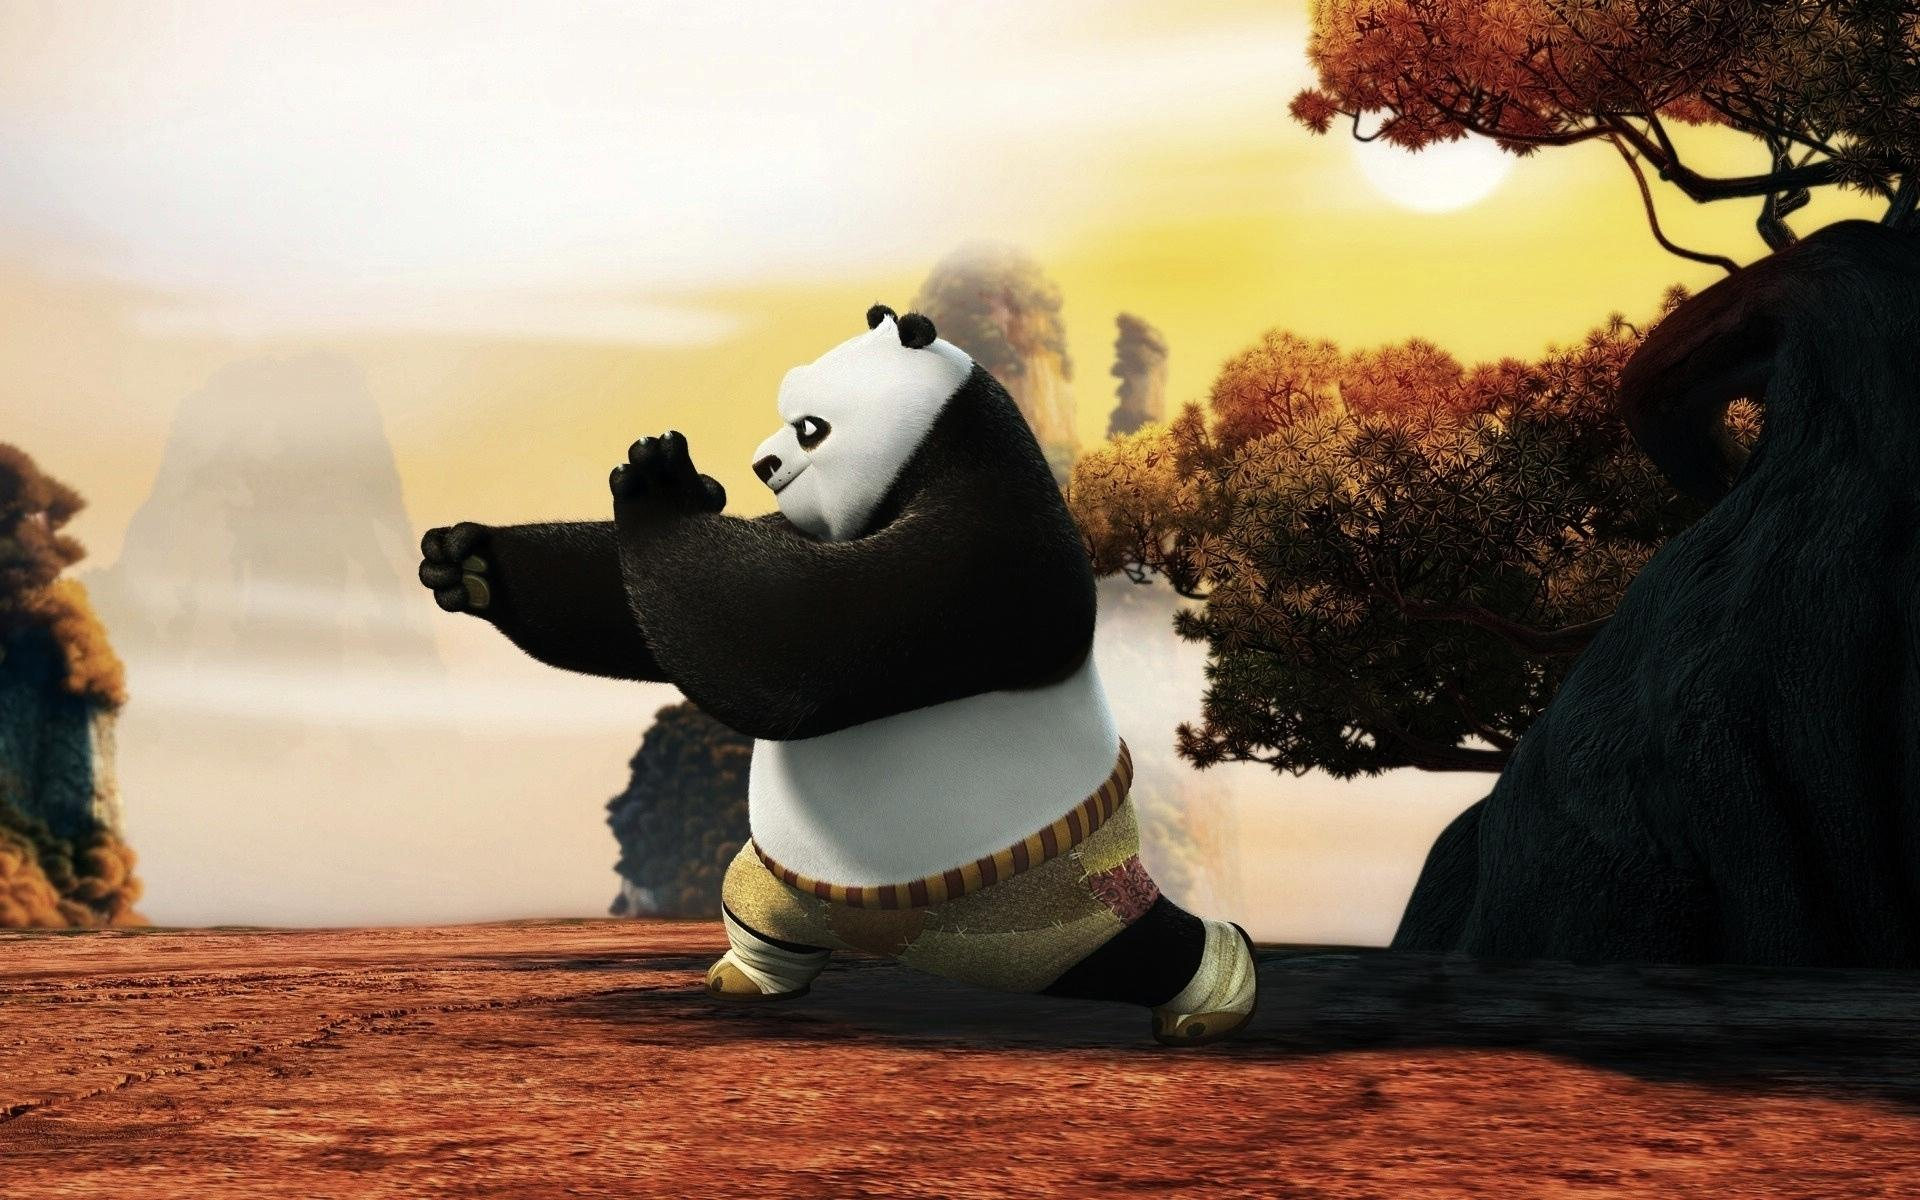 kung fu panda wallpaper hd download